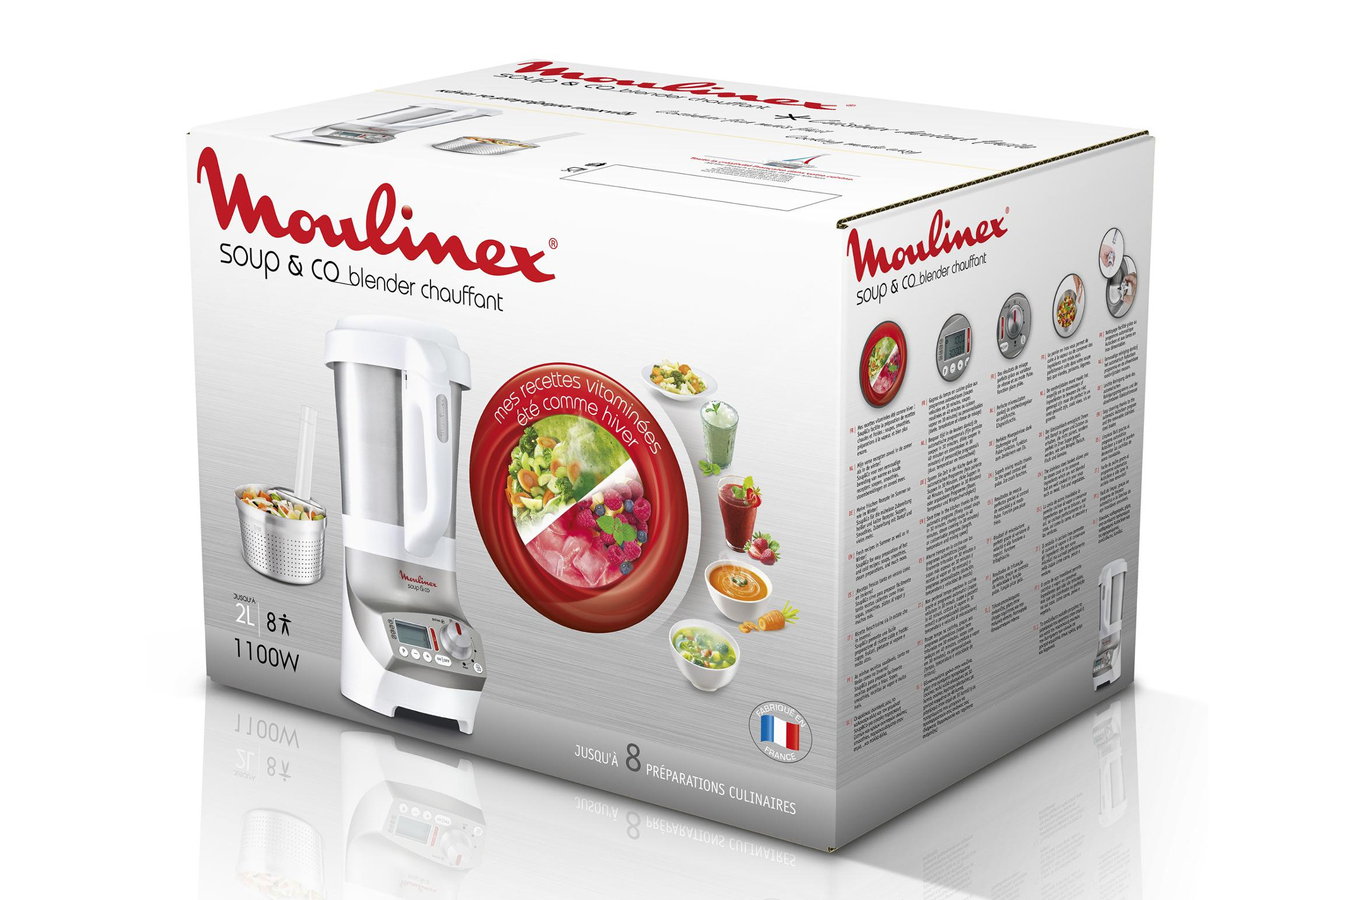 Blender moulinex lm908110 soup co lm908110 soup co - Moulinex soupe and co ...